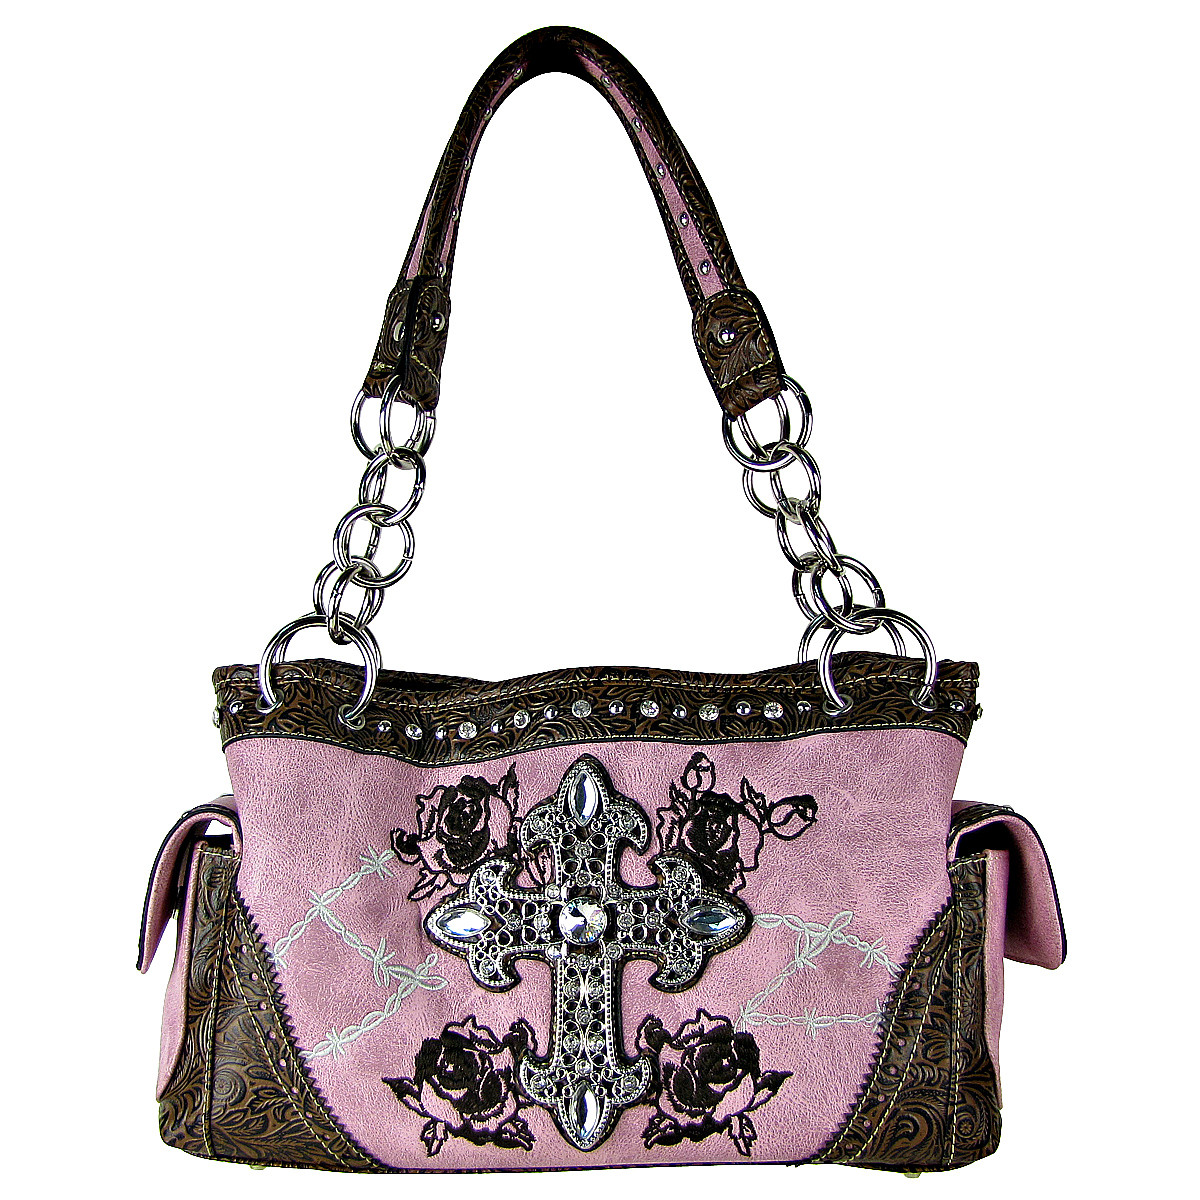 LIGHT PINK STITCHED WESTERN ROSE CROSS LOOK SHOULDER HANDBAG HB1-CHF0018LPK